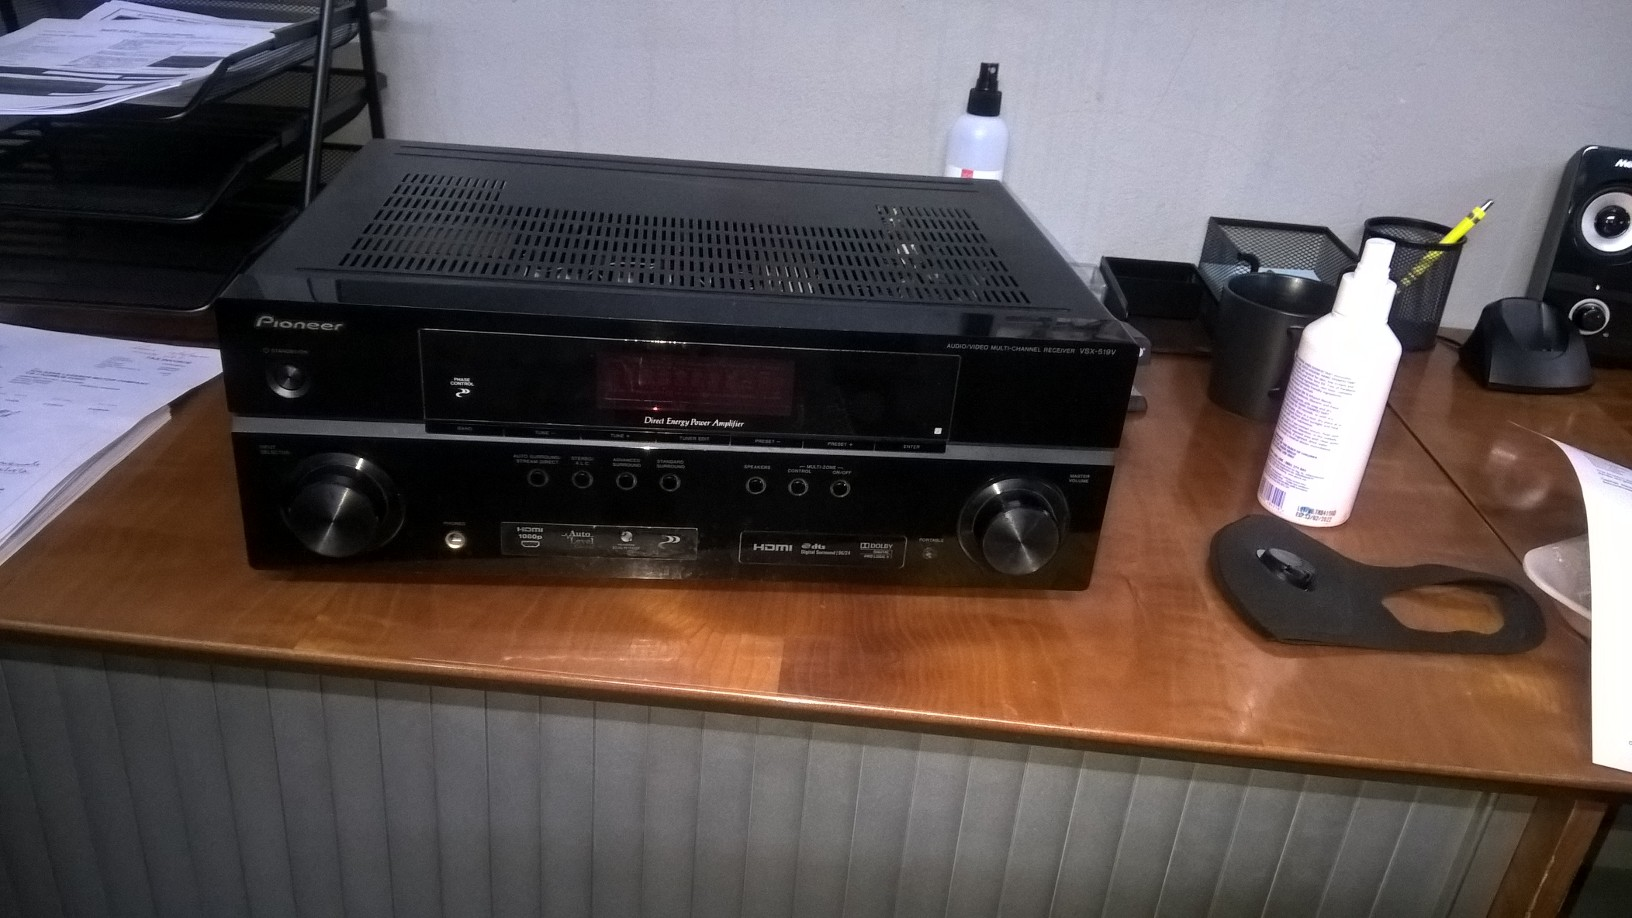 Pioneer Receiver VSX-519V-K for sale , perfect working condition .